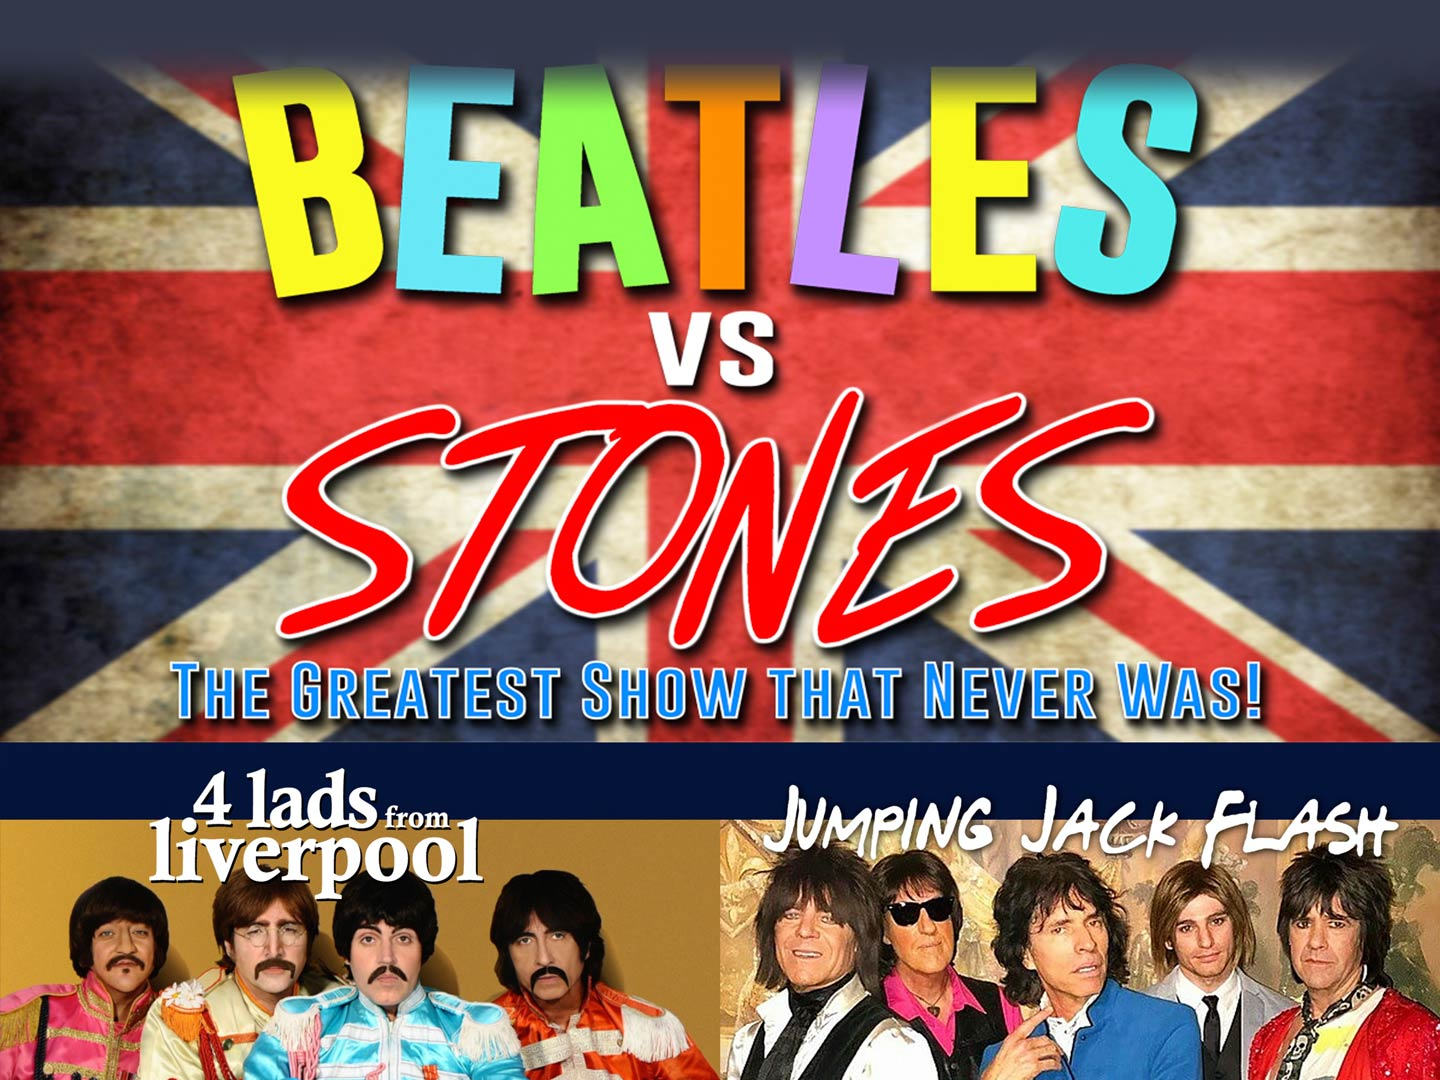 Beatles Versus Stones - The Battle of the Brits